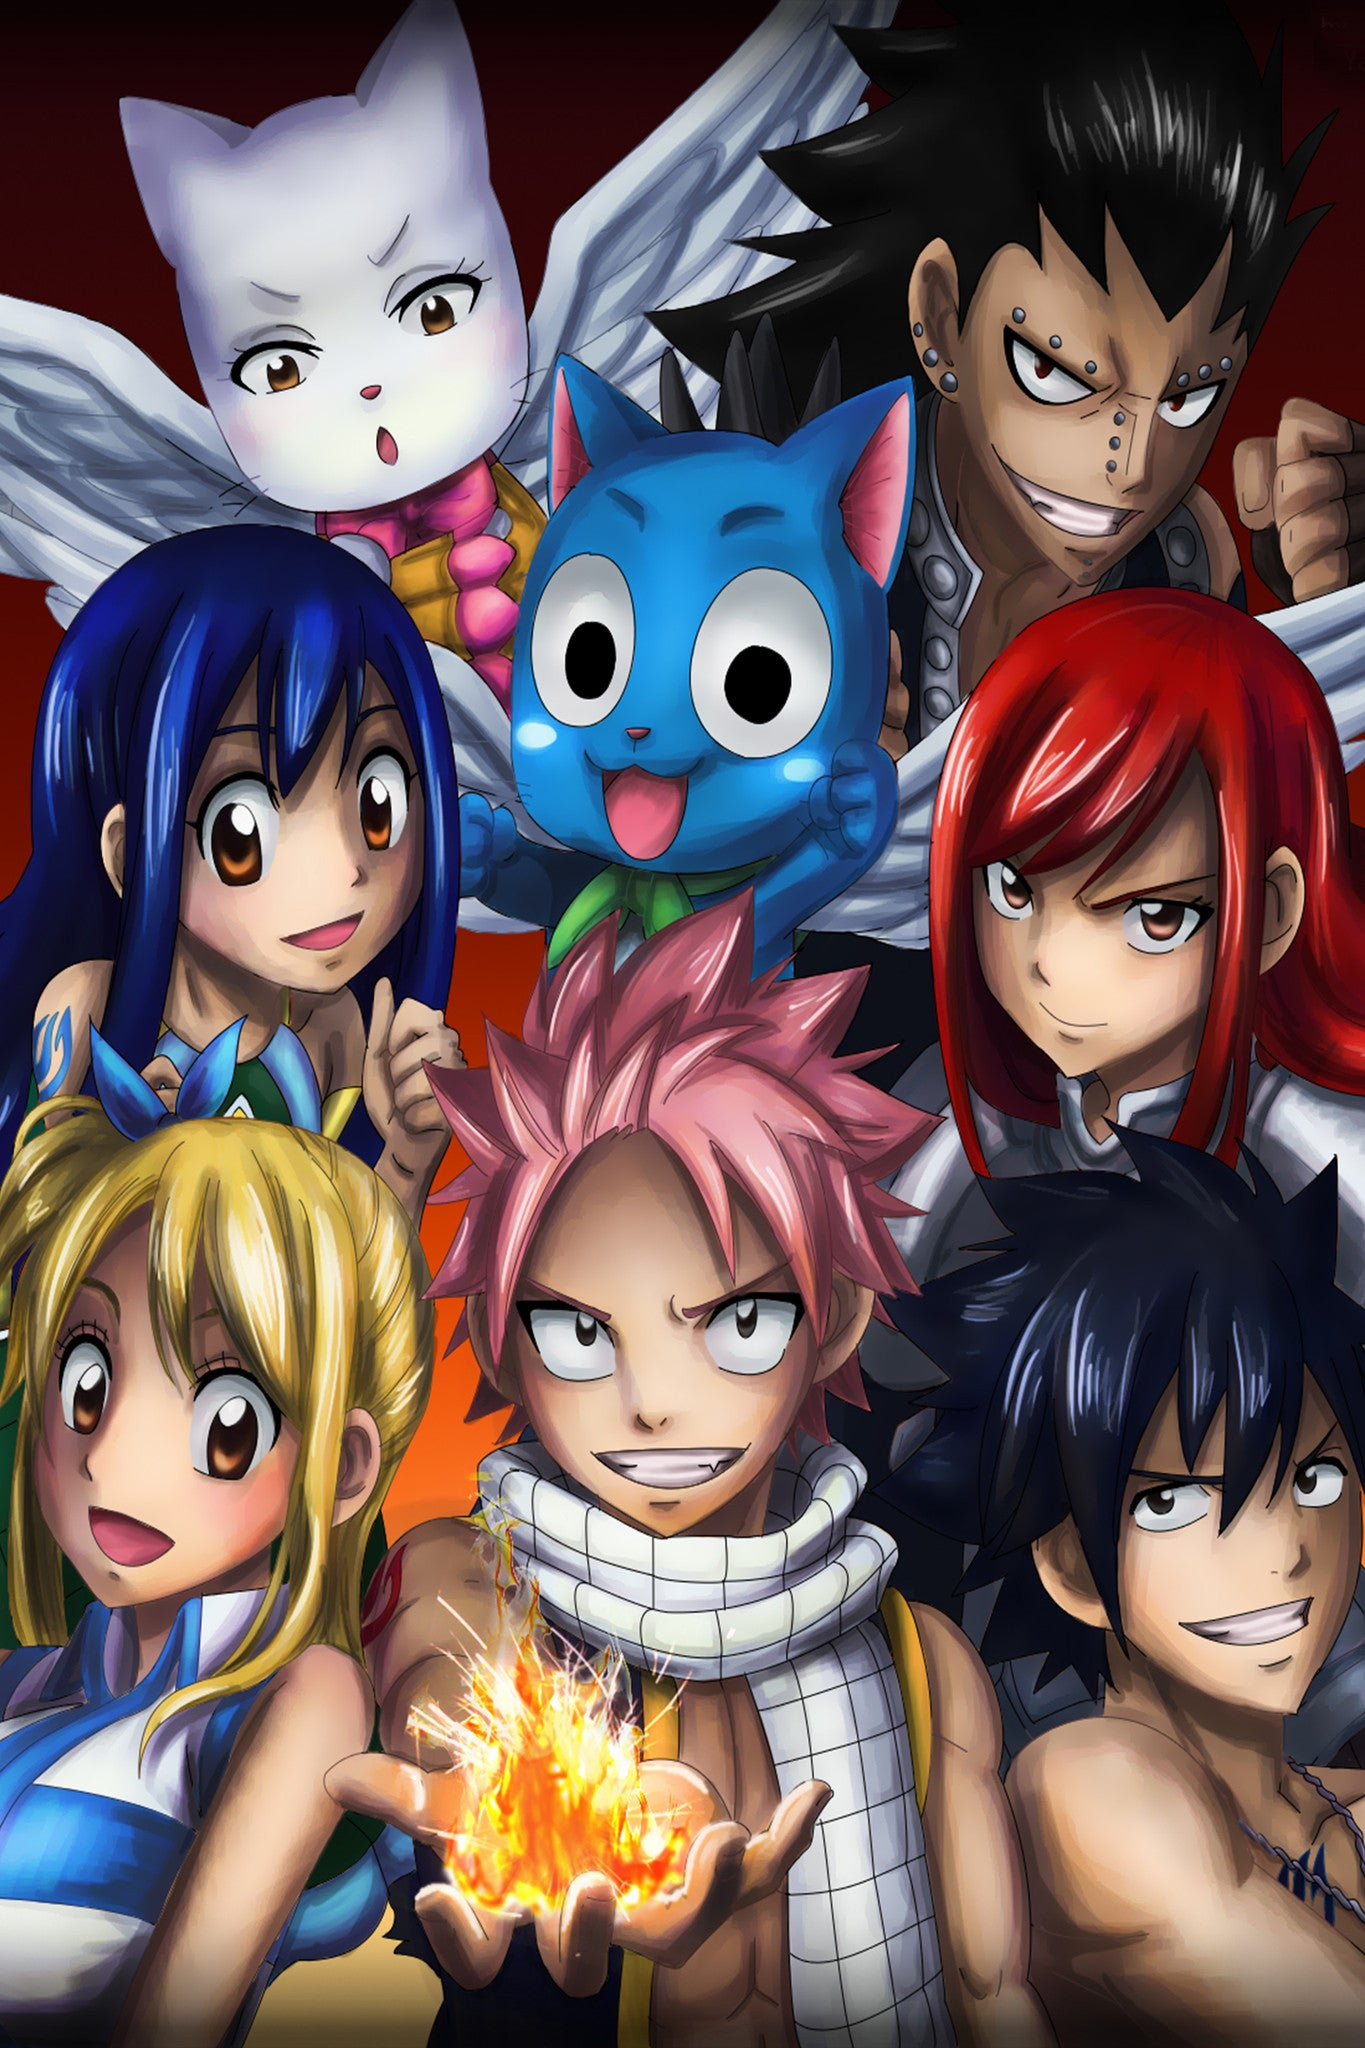 Anime Fairy Tail Characters Poster in India - Silly Punter